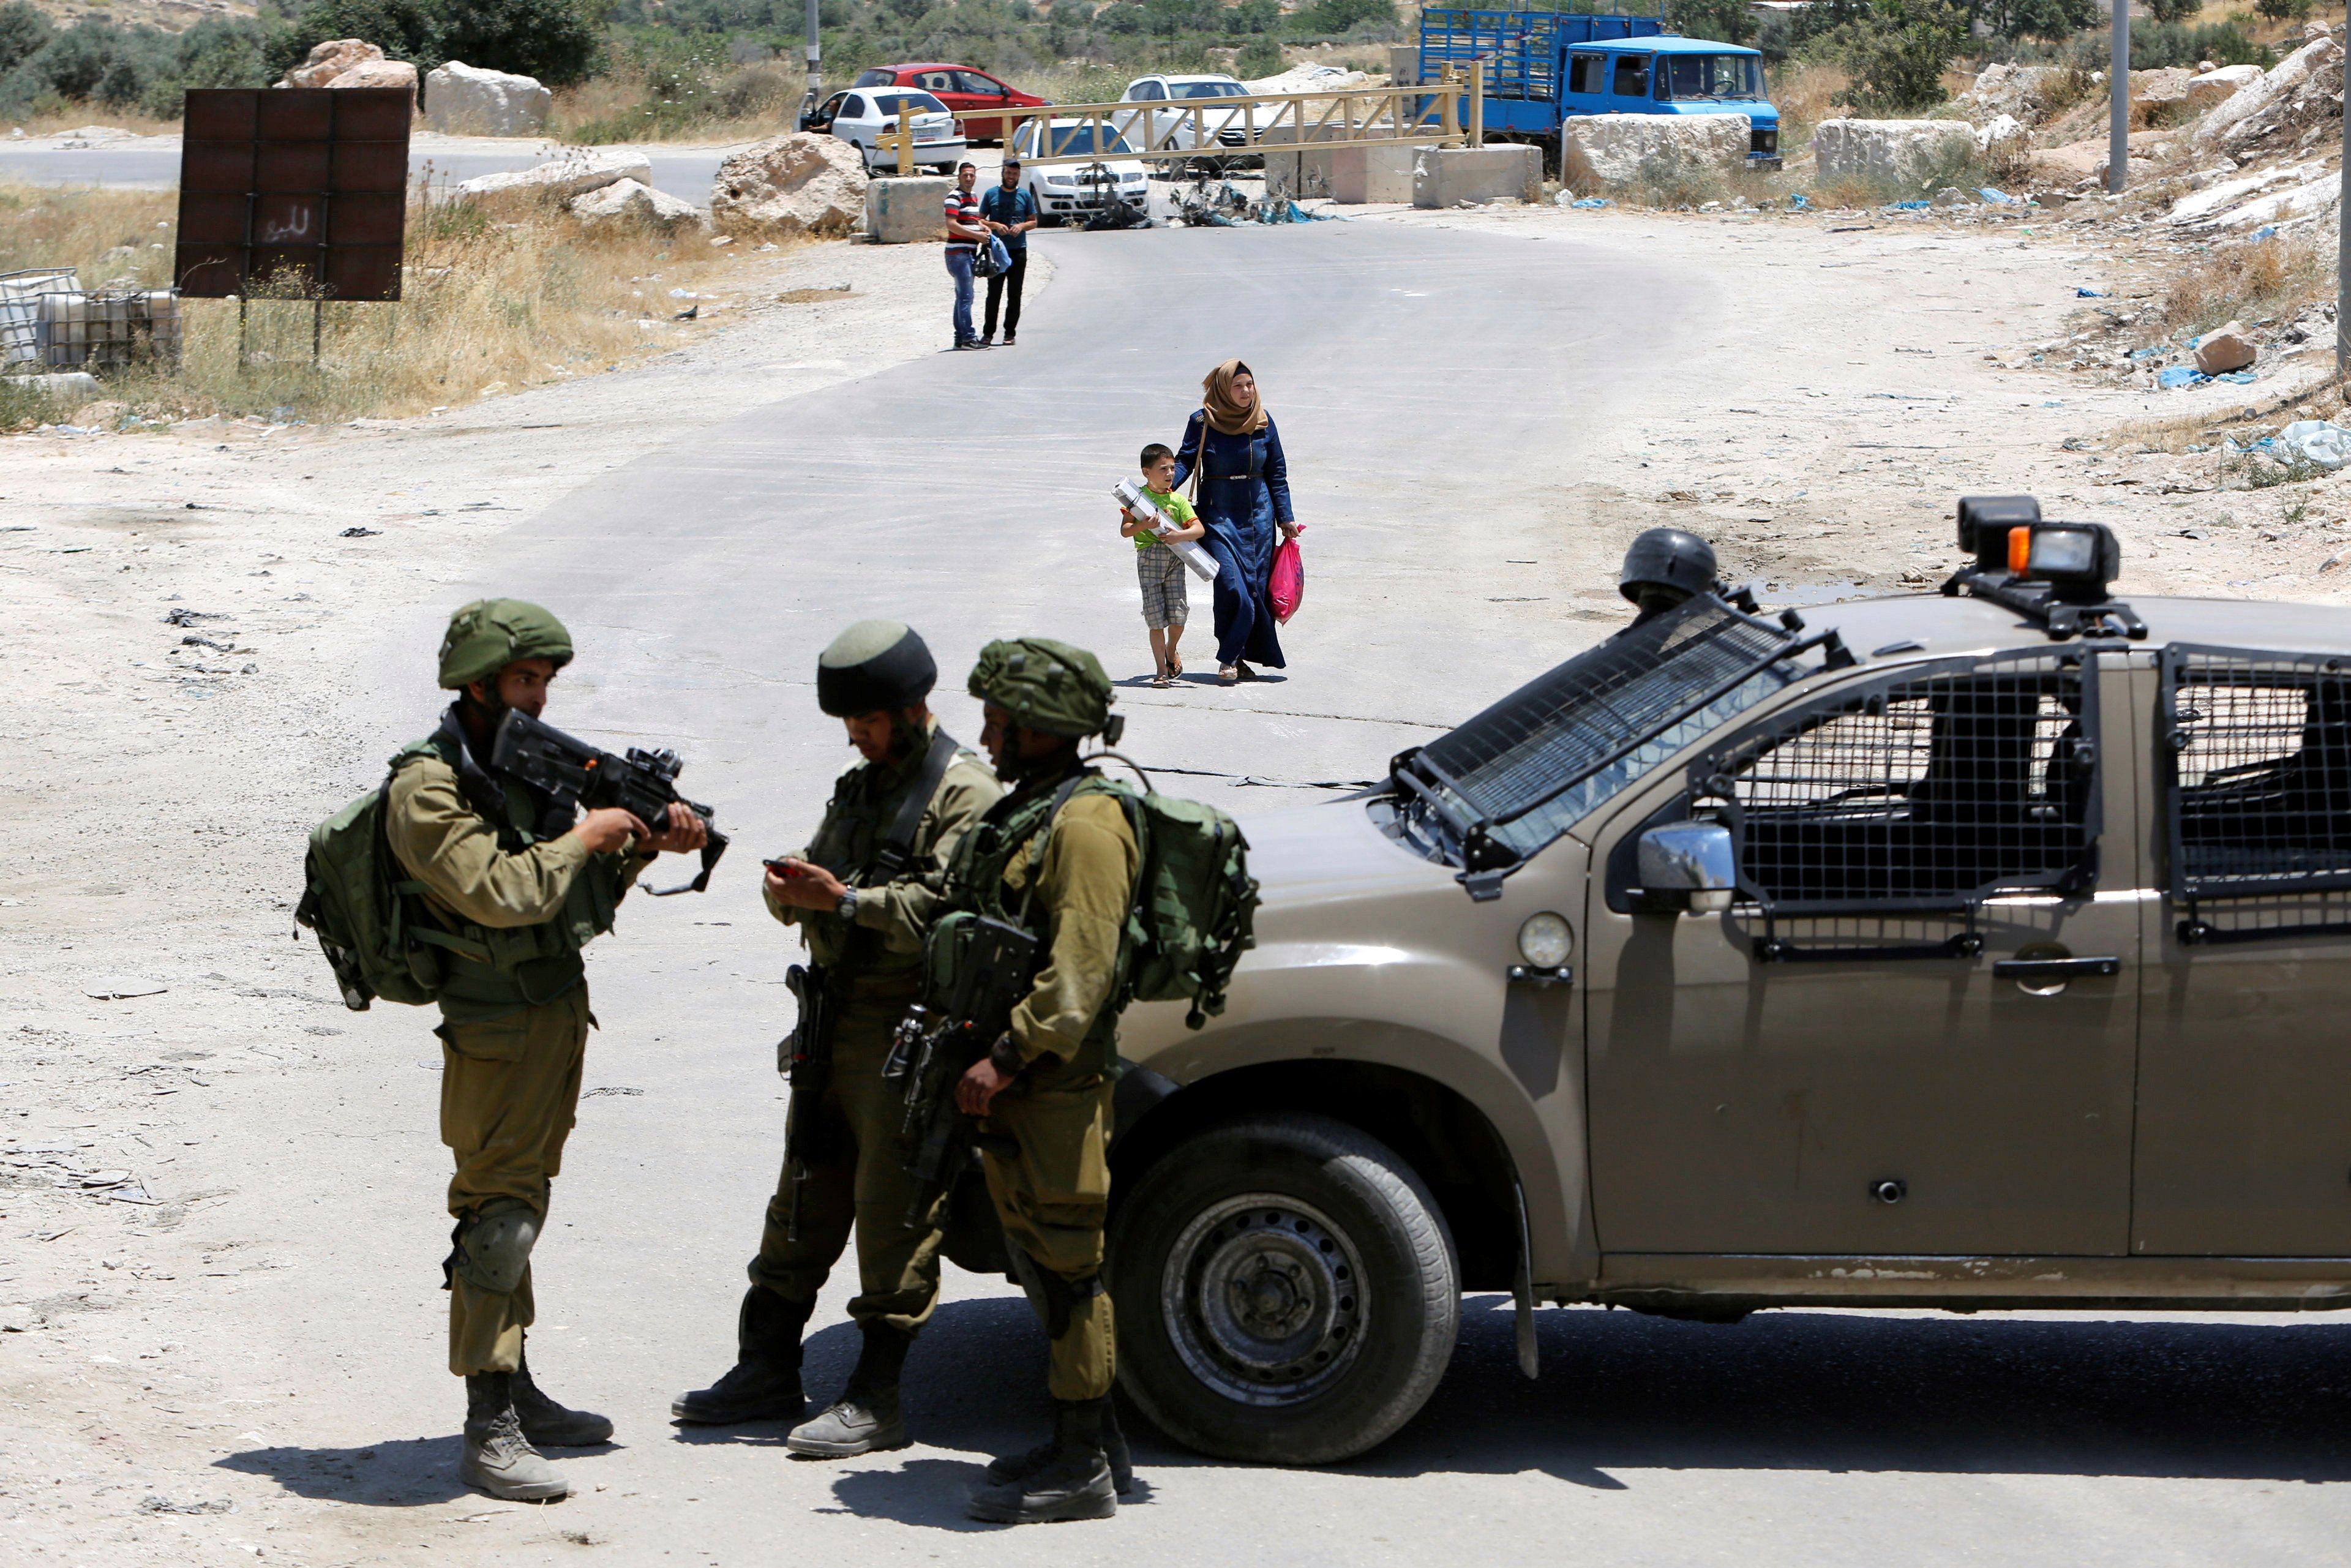 Israeli soldiers stand guard at the entrance of Yatta near the West Bank city of